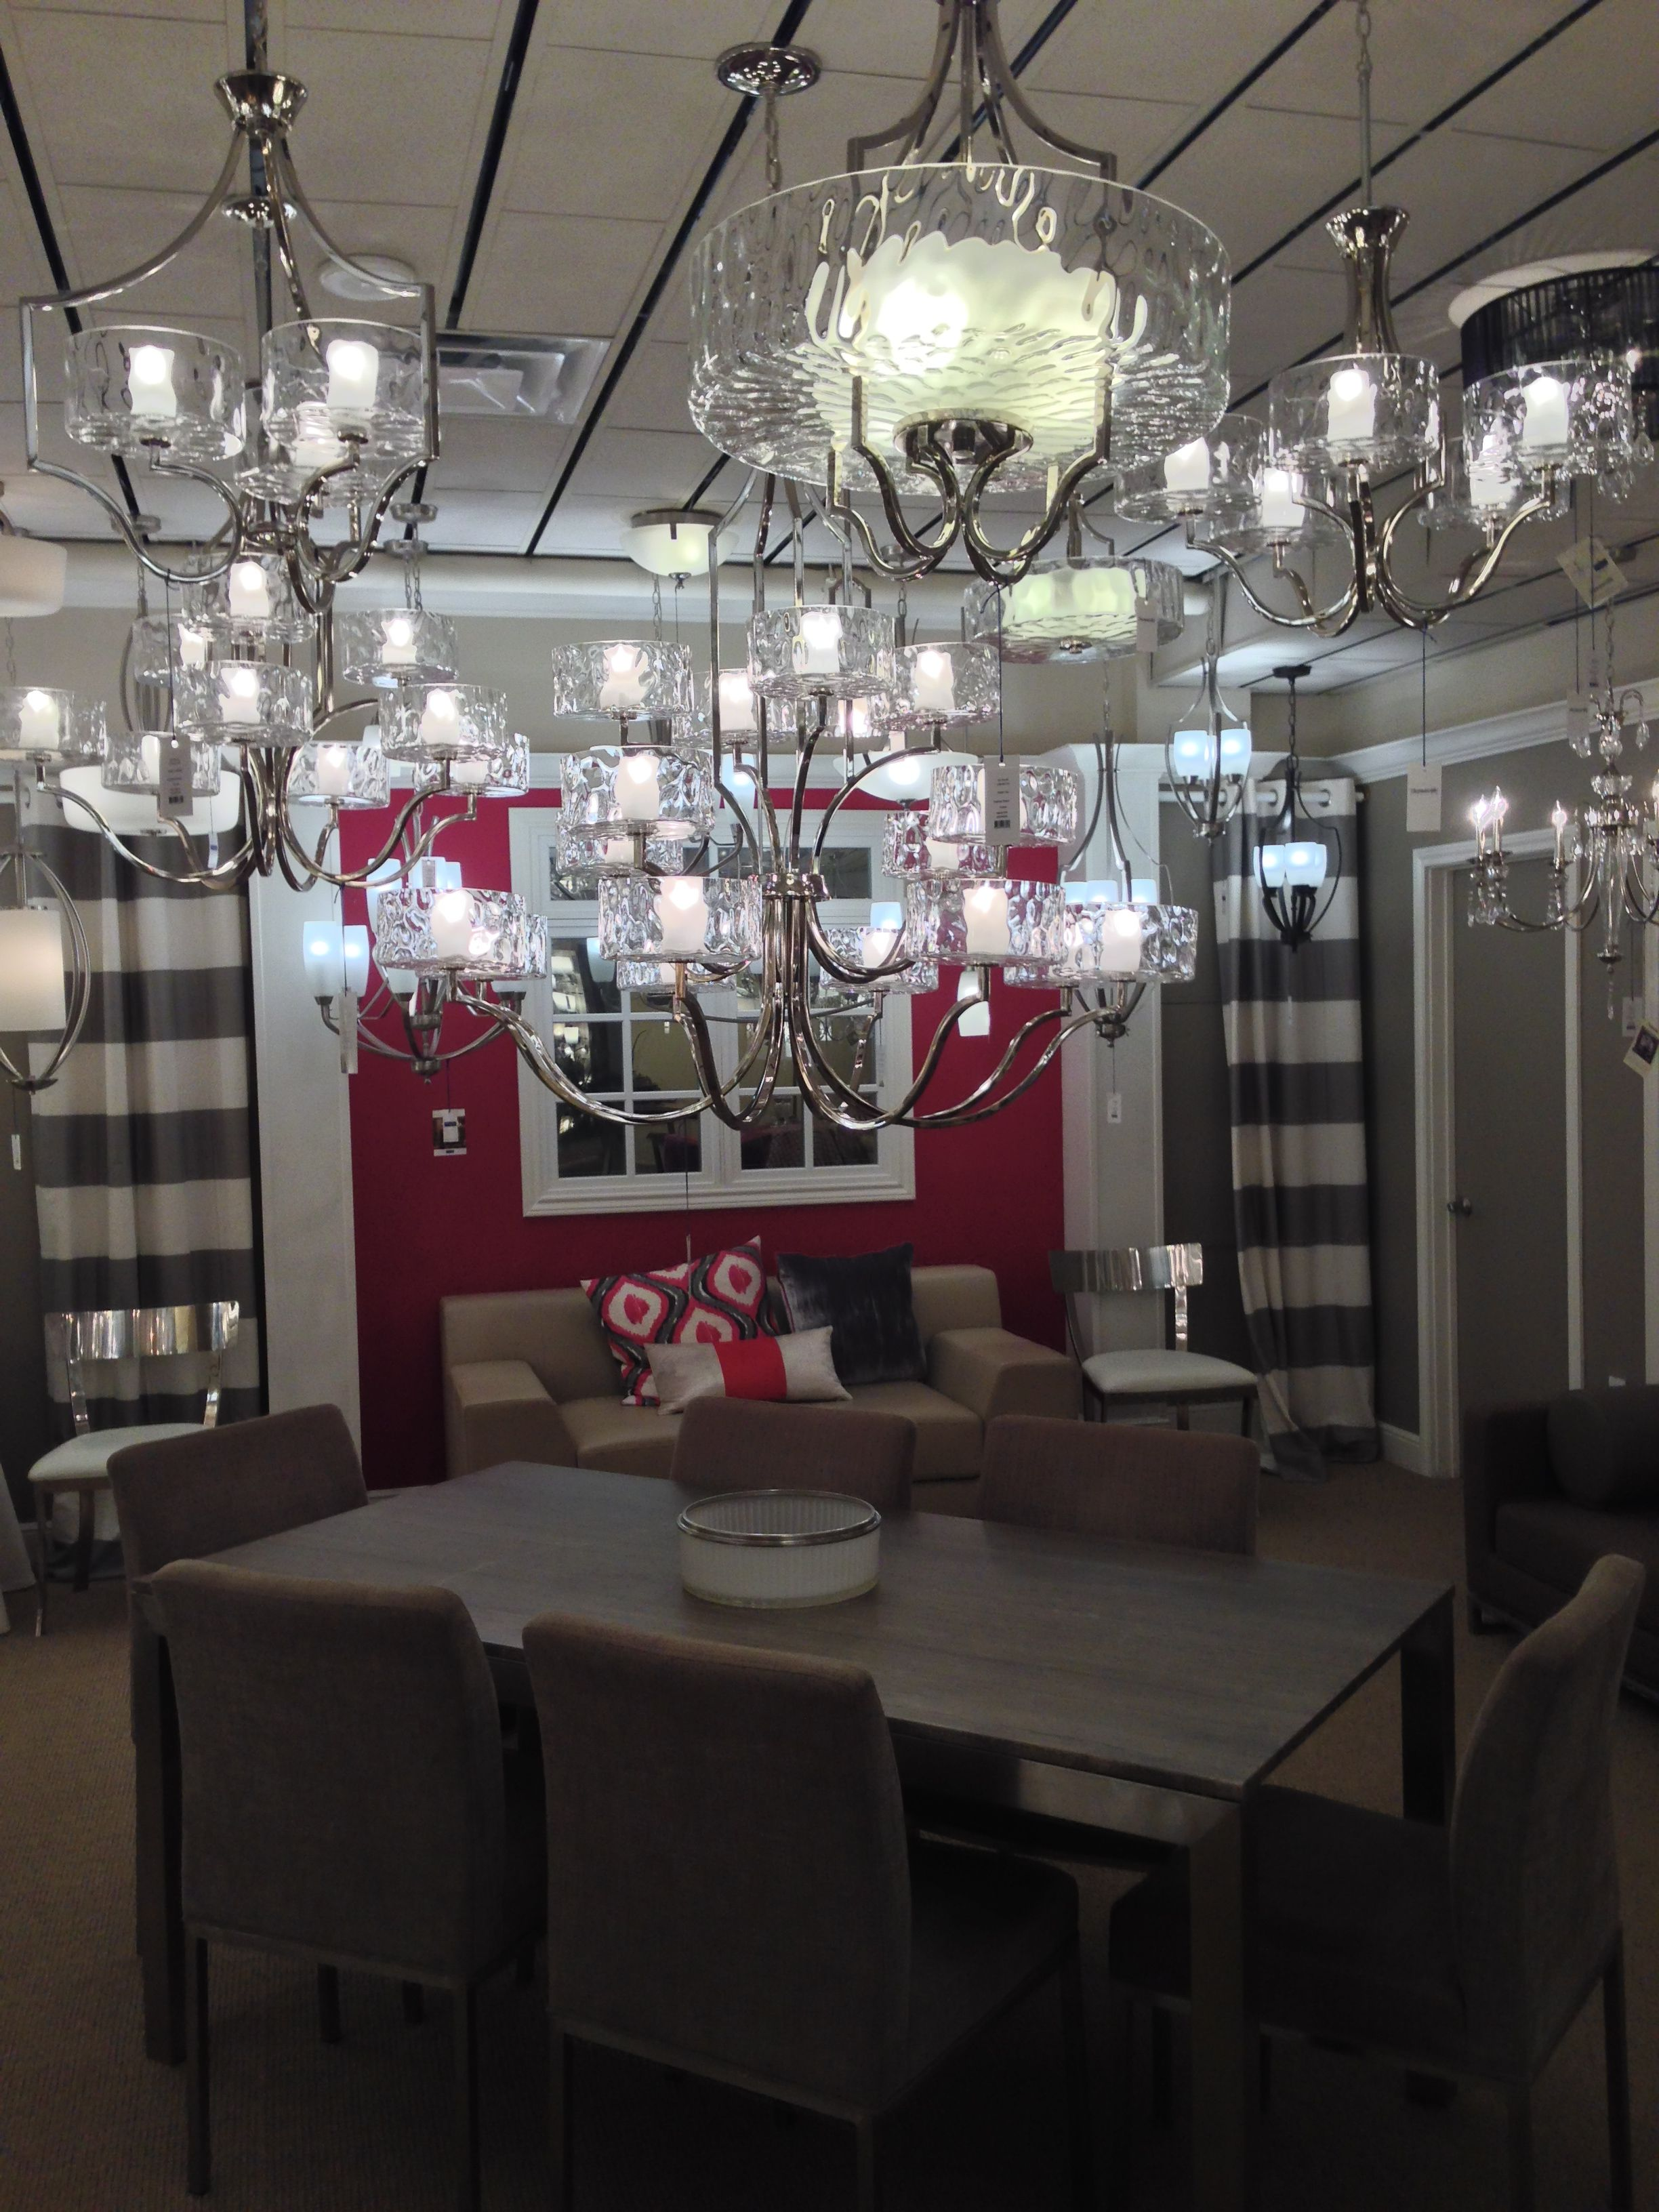 Caress chandeliers for a touch of elegance DallasMarket January